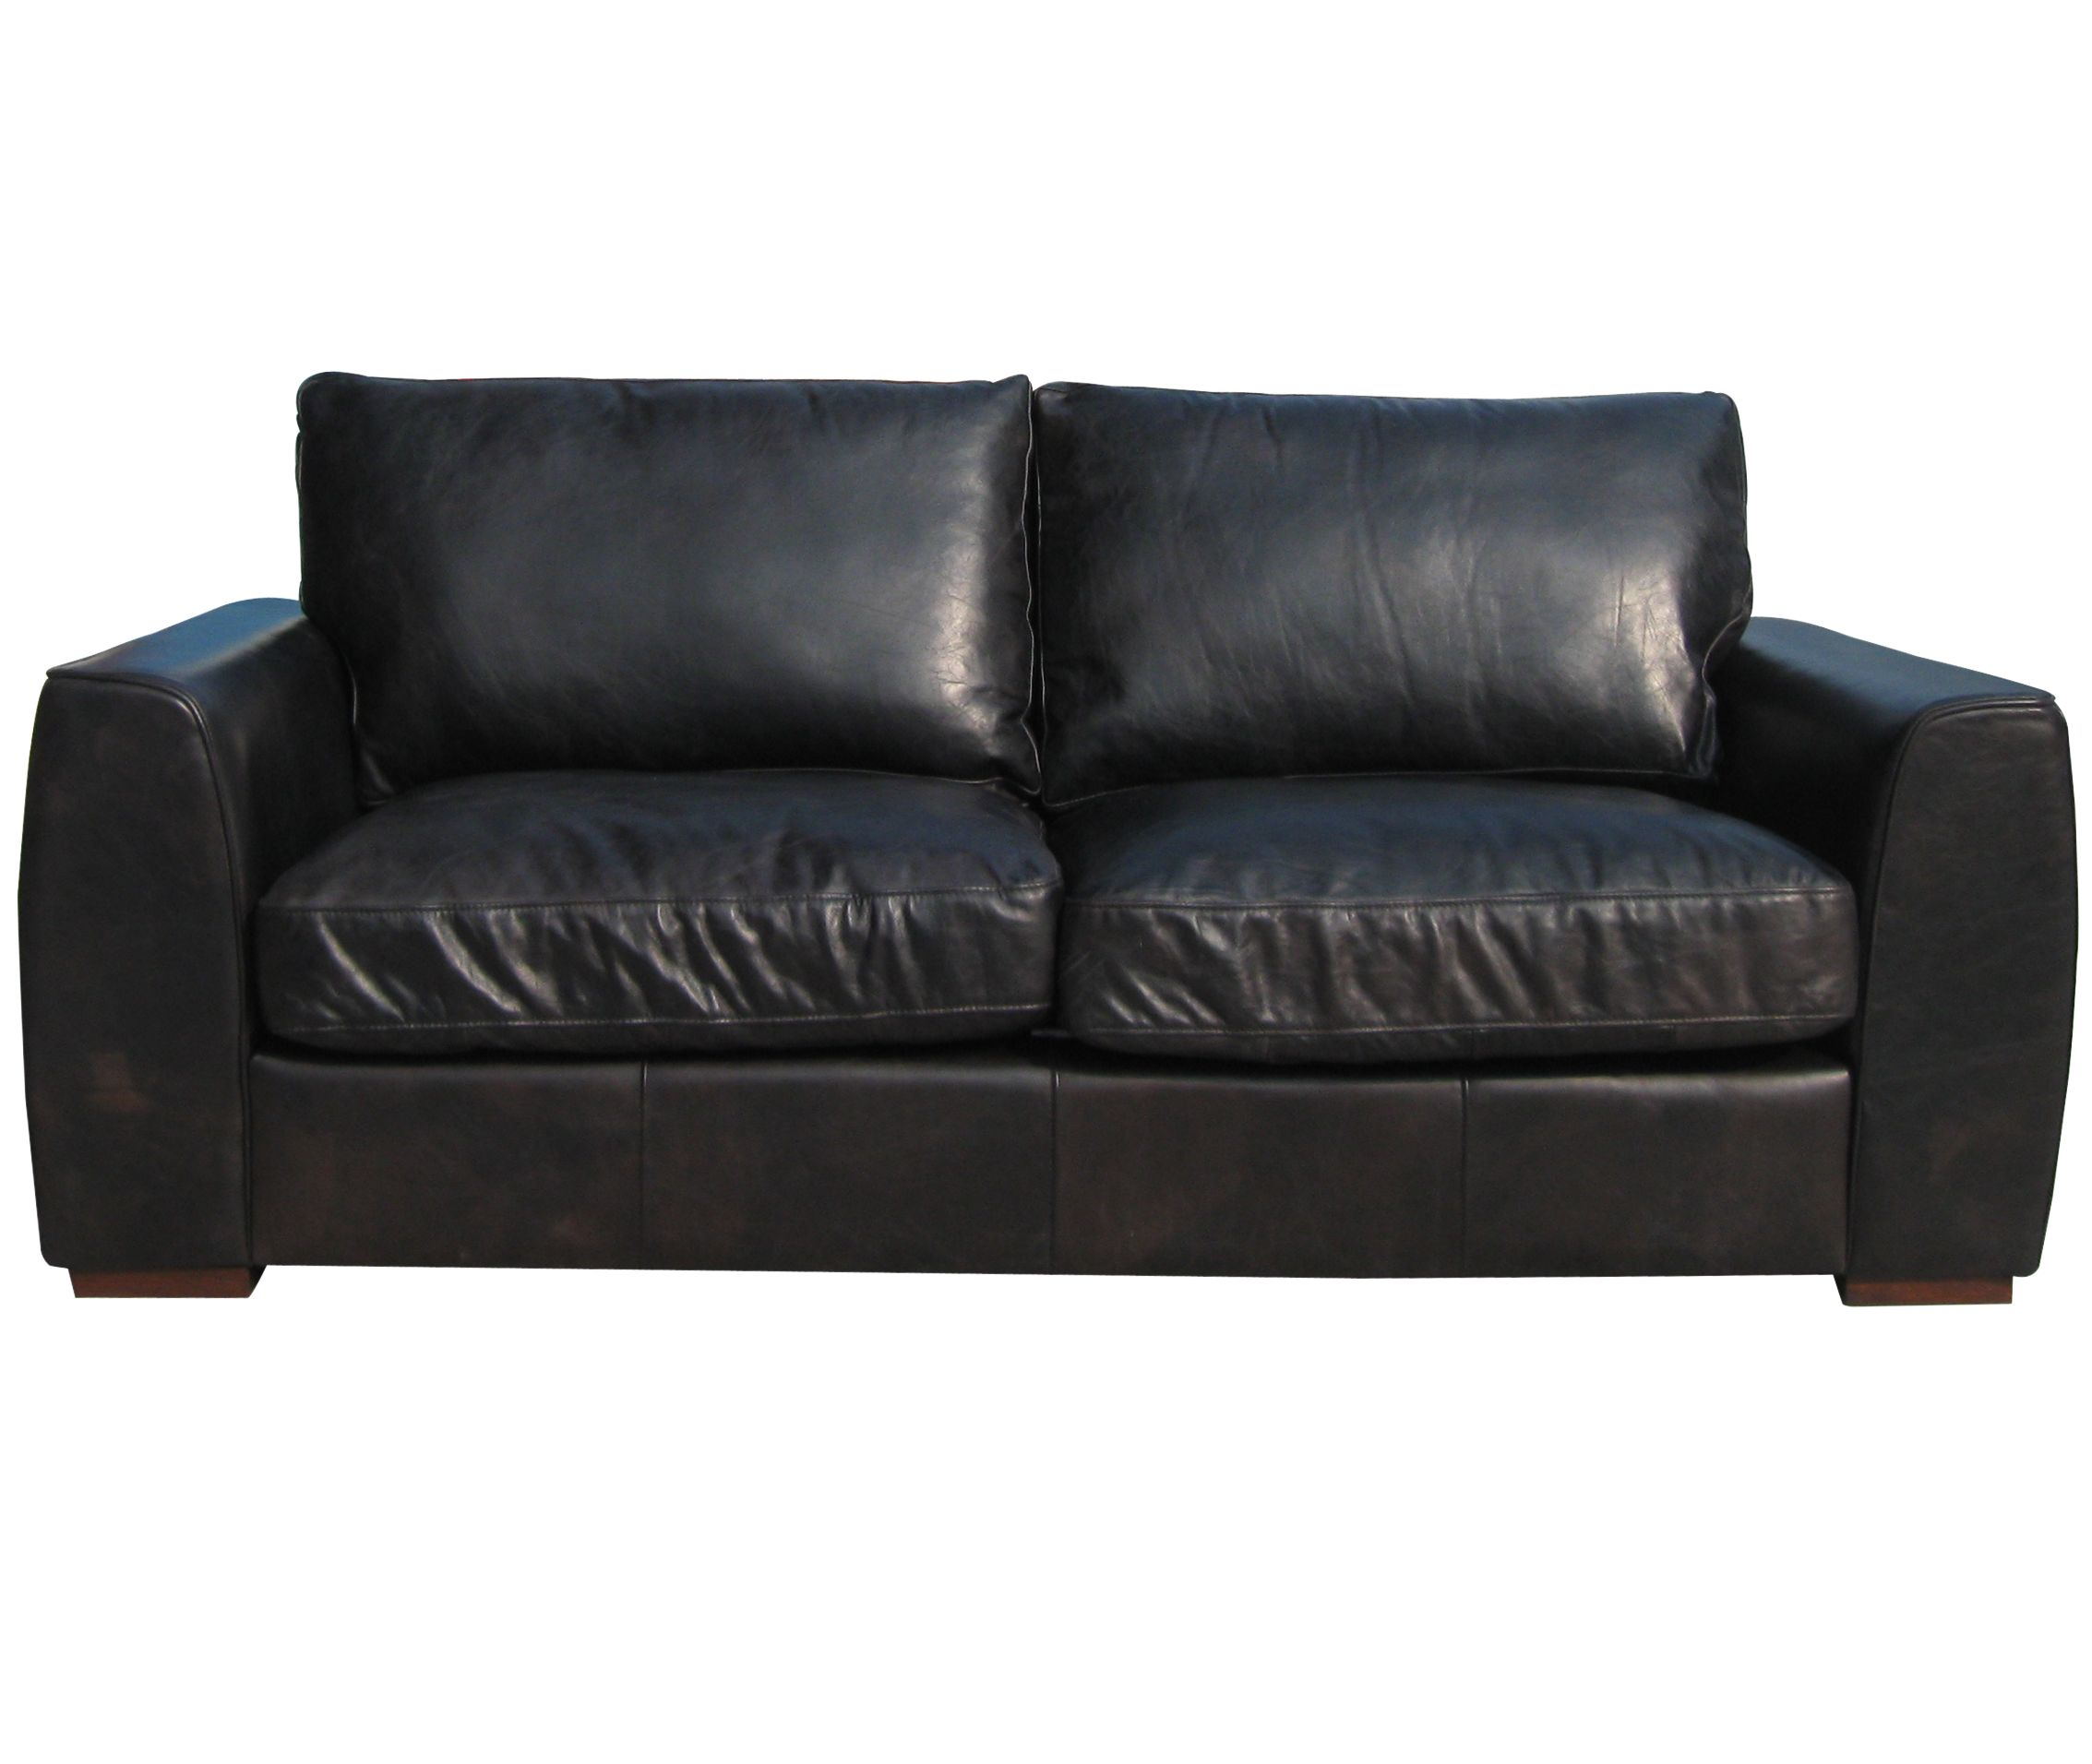 Colorado black sofa range